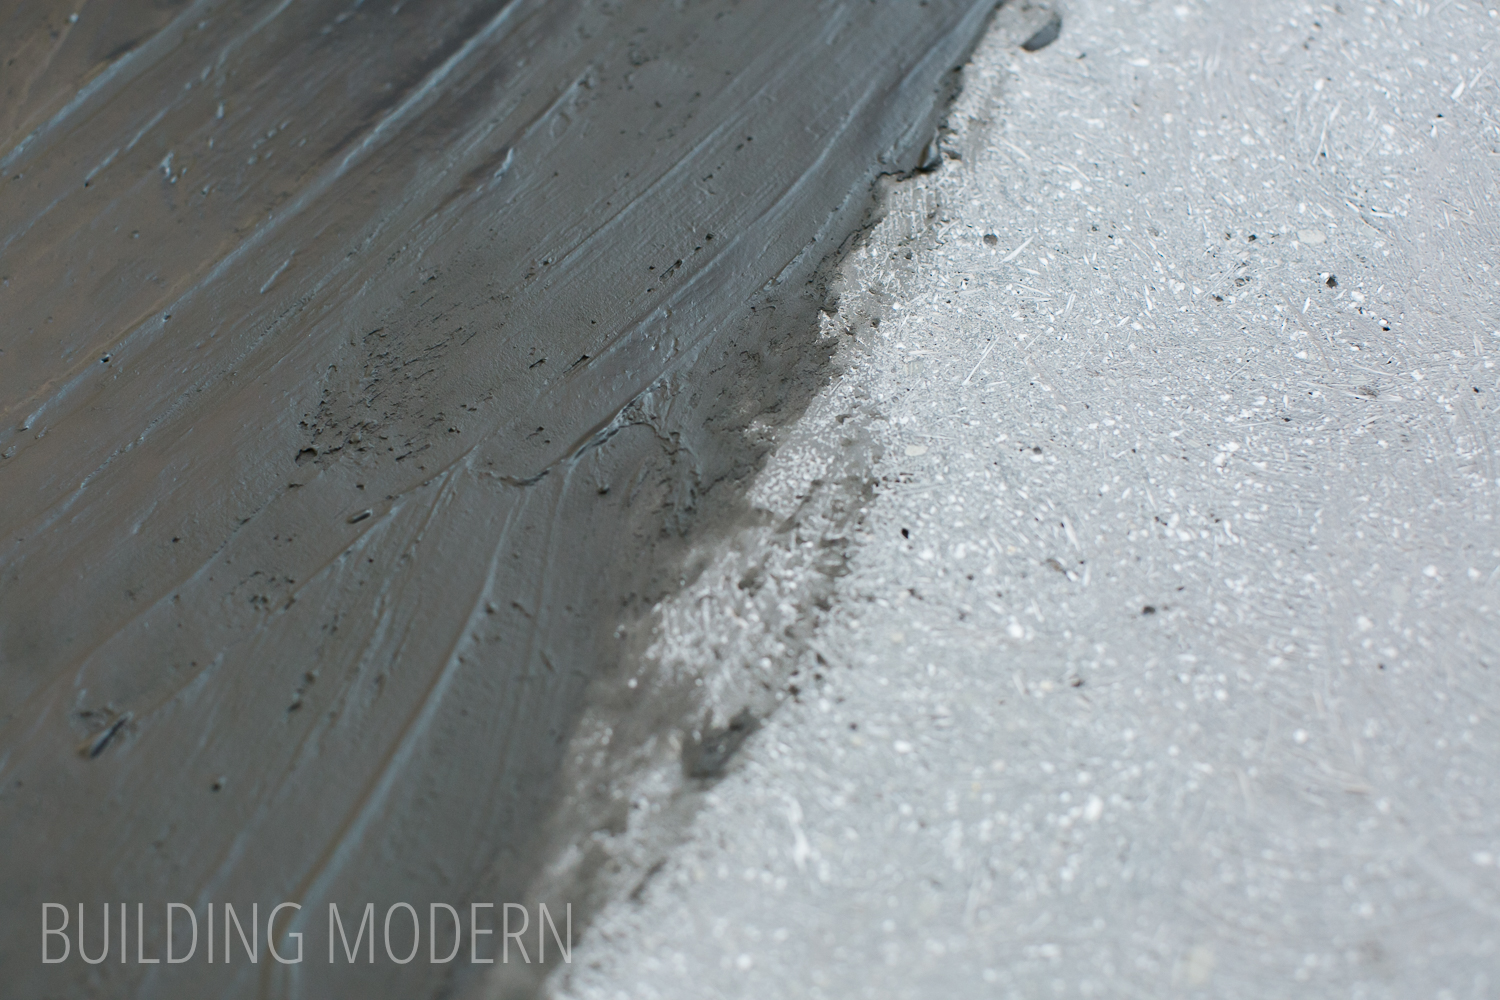 Applying a slurry topcoat finish to concrete countertops